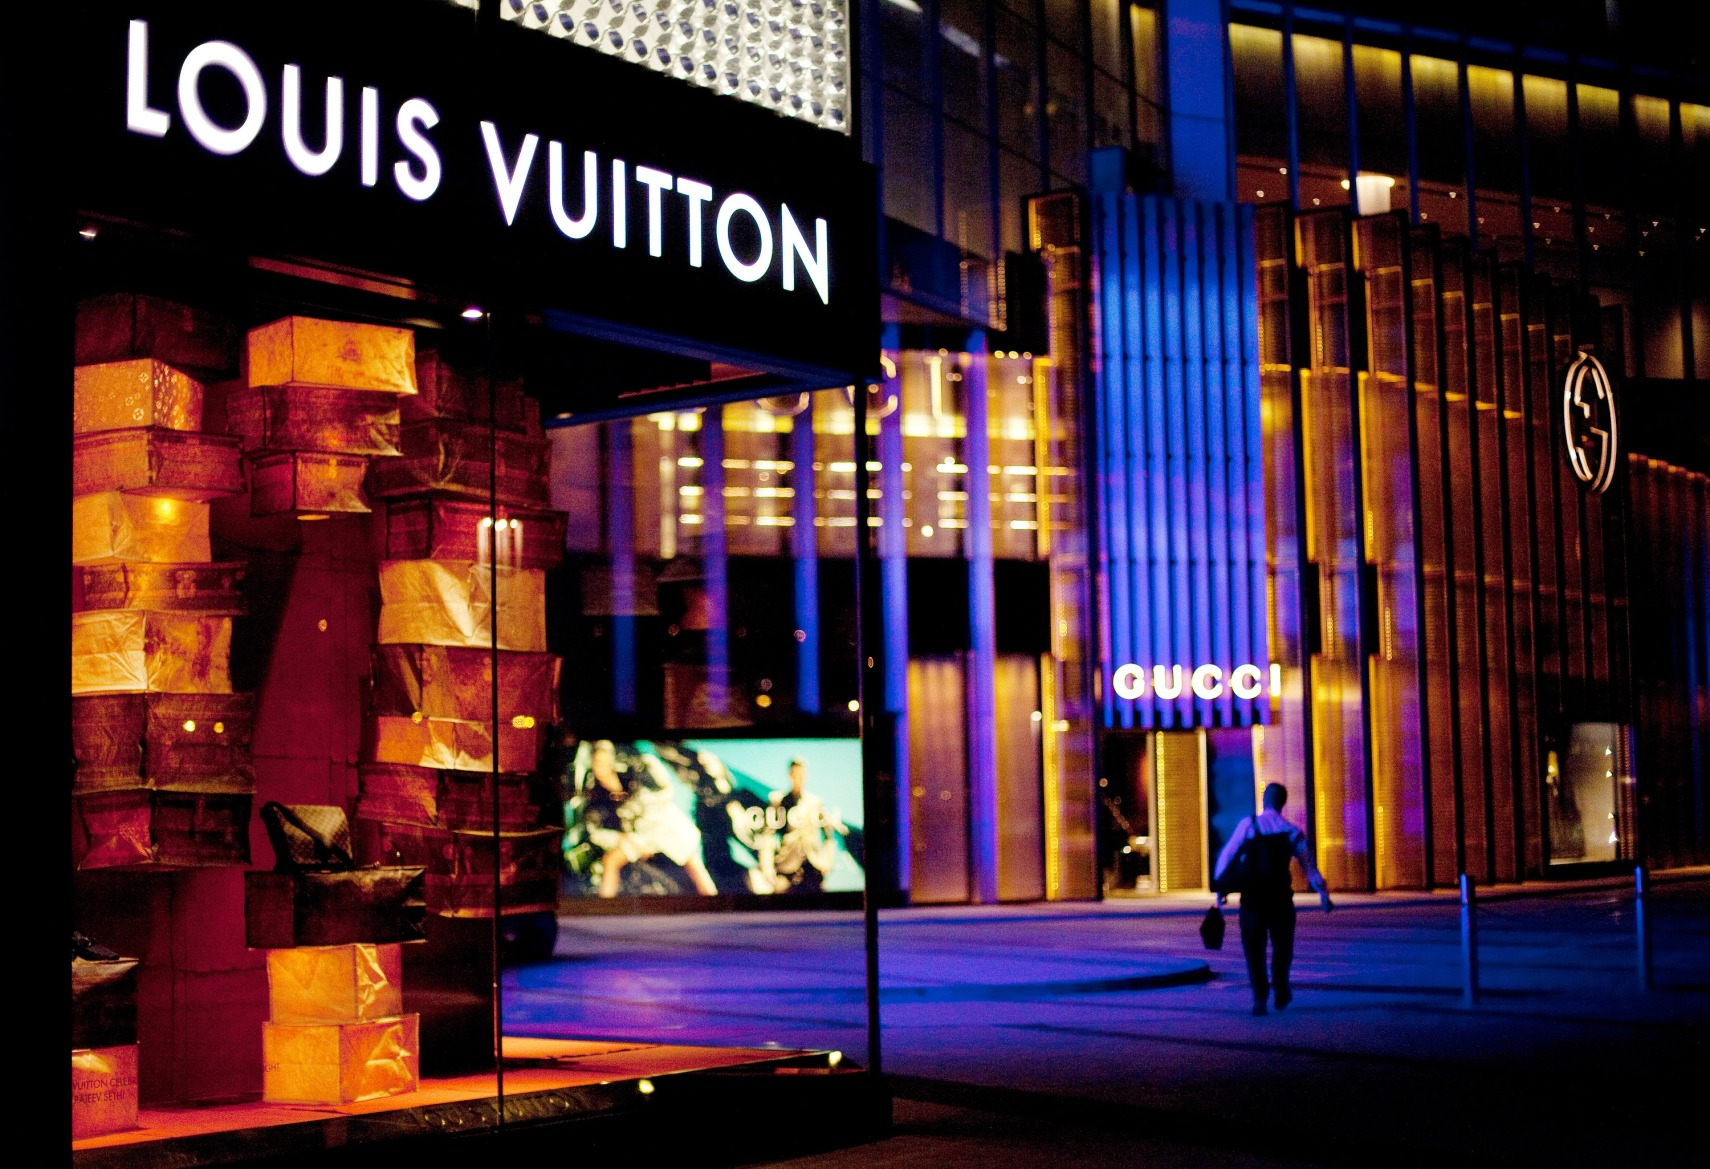 A LVMH Moet Hennessy Louis Vuitton store